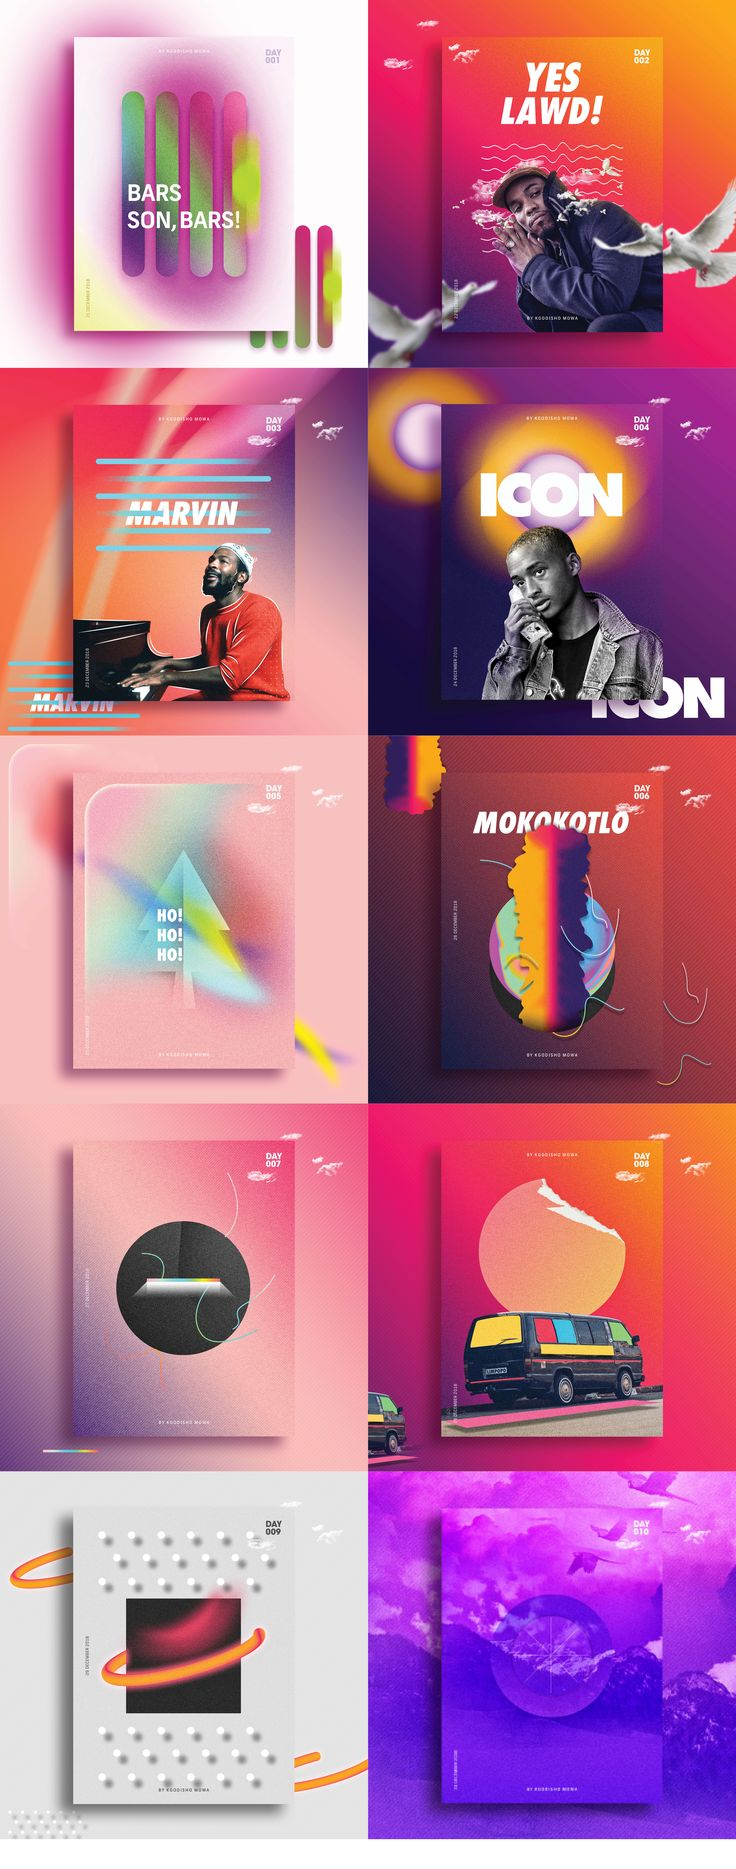 """Check out my @Behance project: """"10 Days Poster Collection"""" https://www.behance.net/gallery/60324223/10-Days-Poster-Collection #graphicdesign #design #art #behance #artdirection #color #colour #popart"""